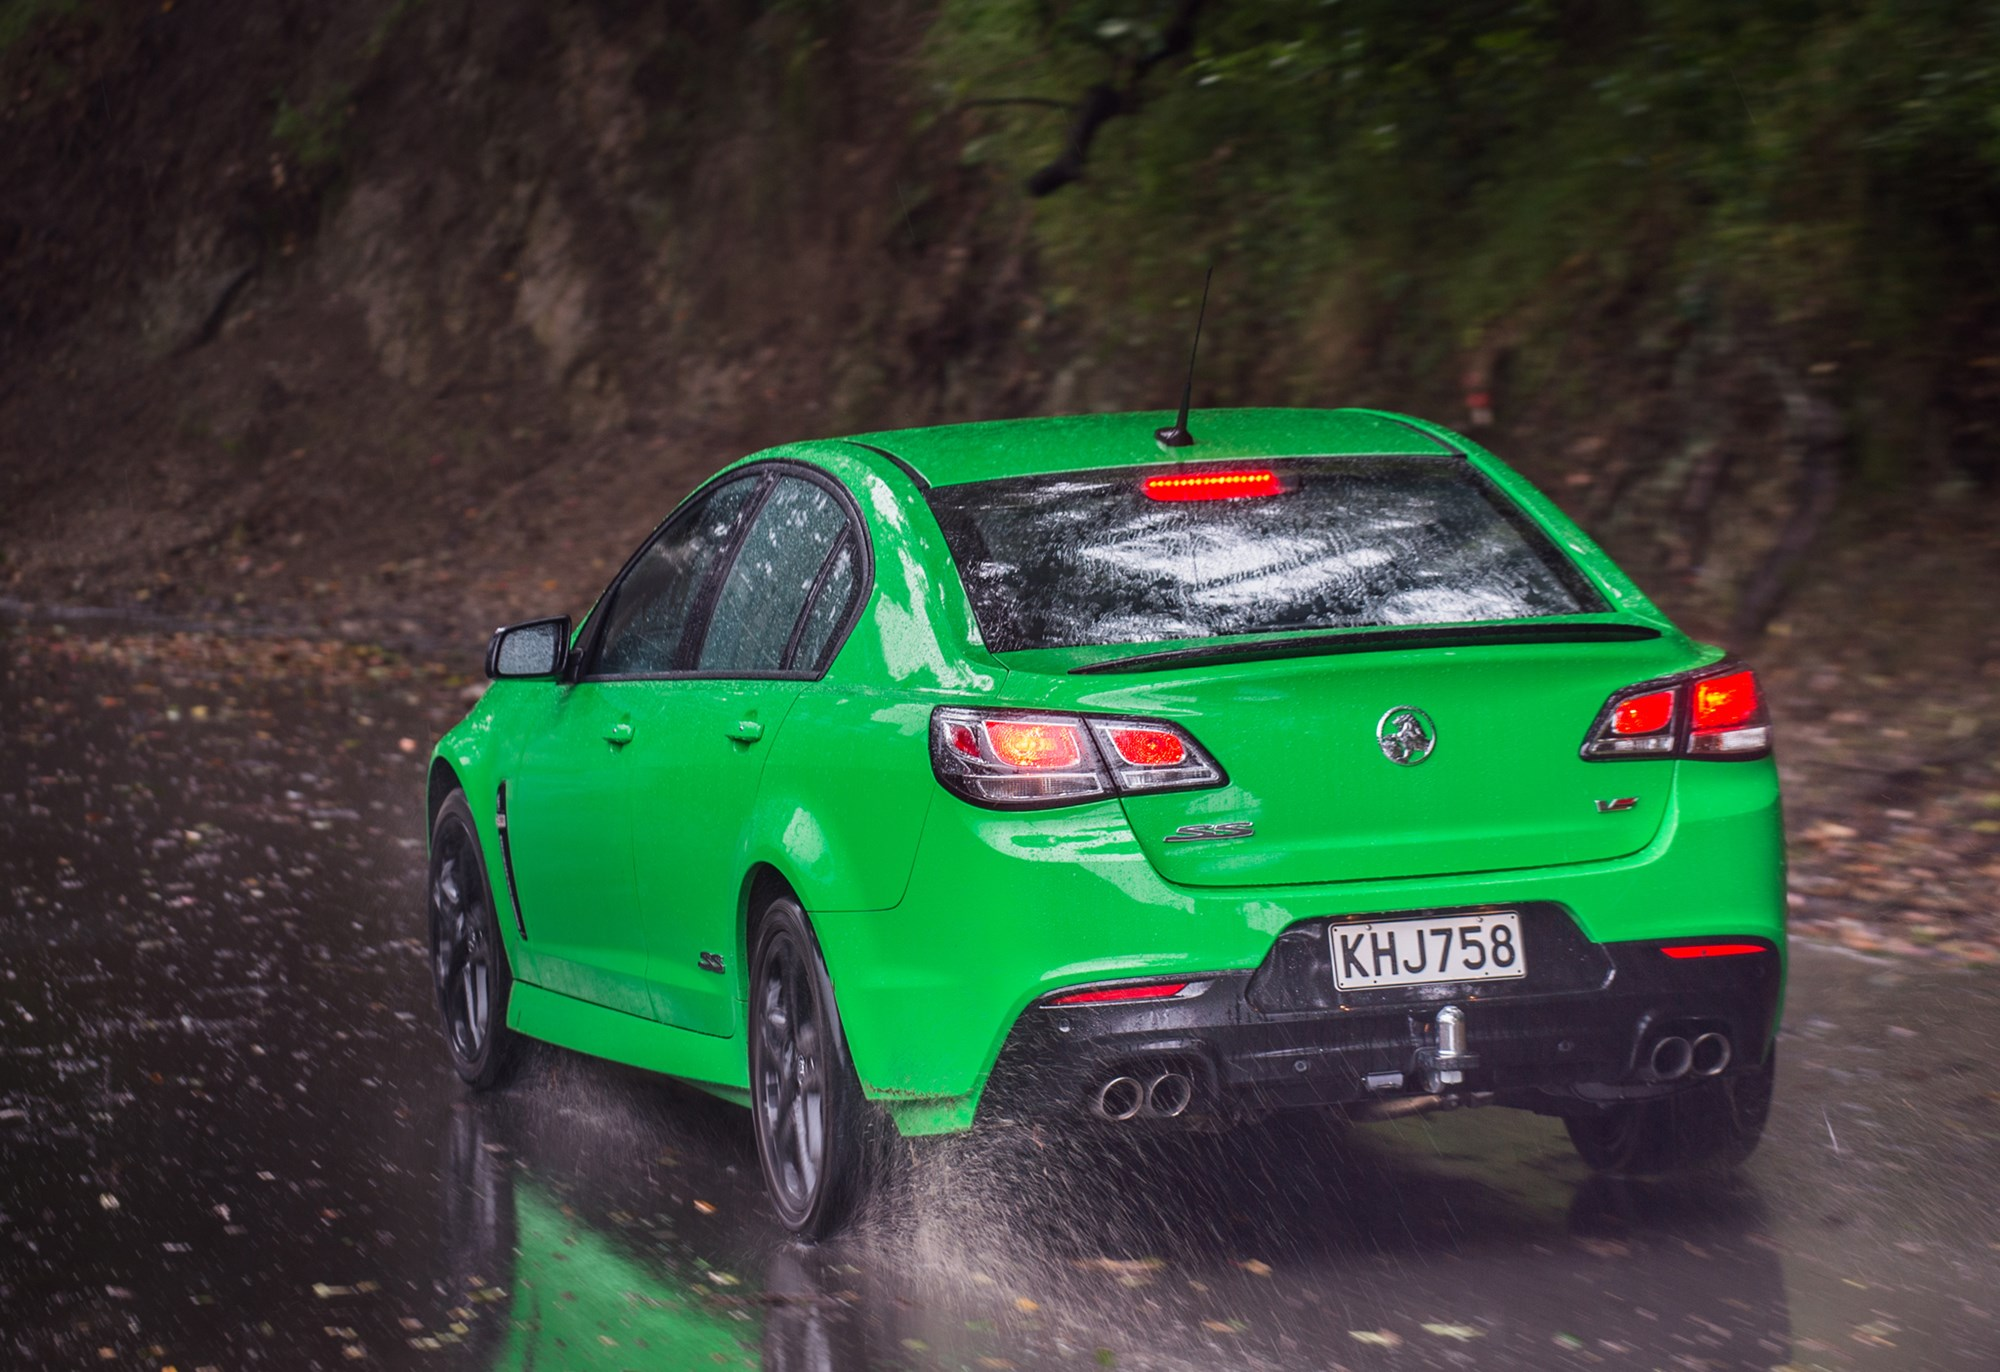 A V8 that shakes you: Holden's Commodore SS-V Redline tested - Road